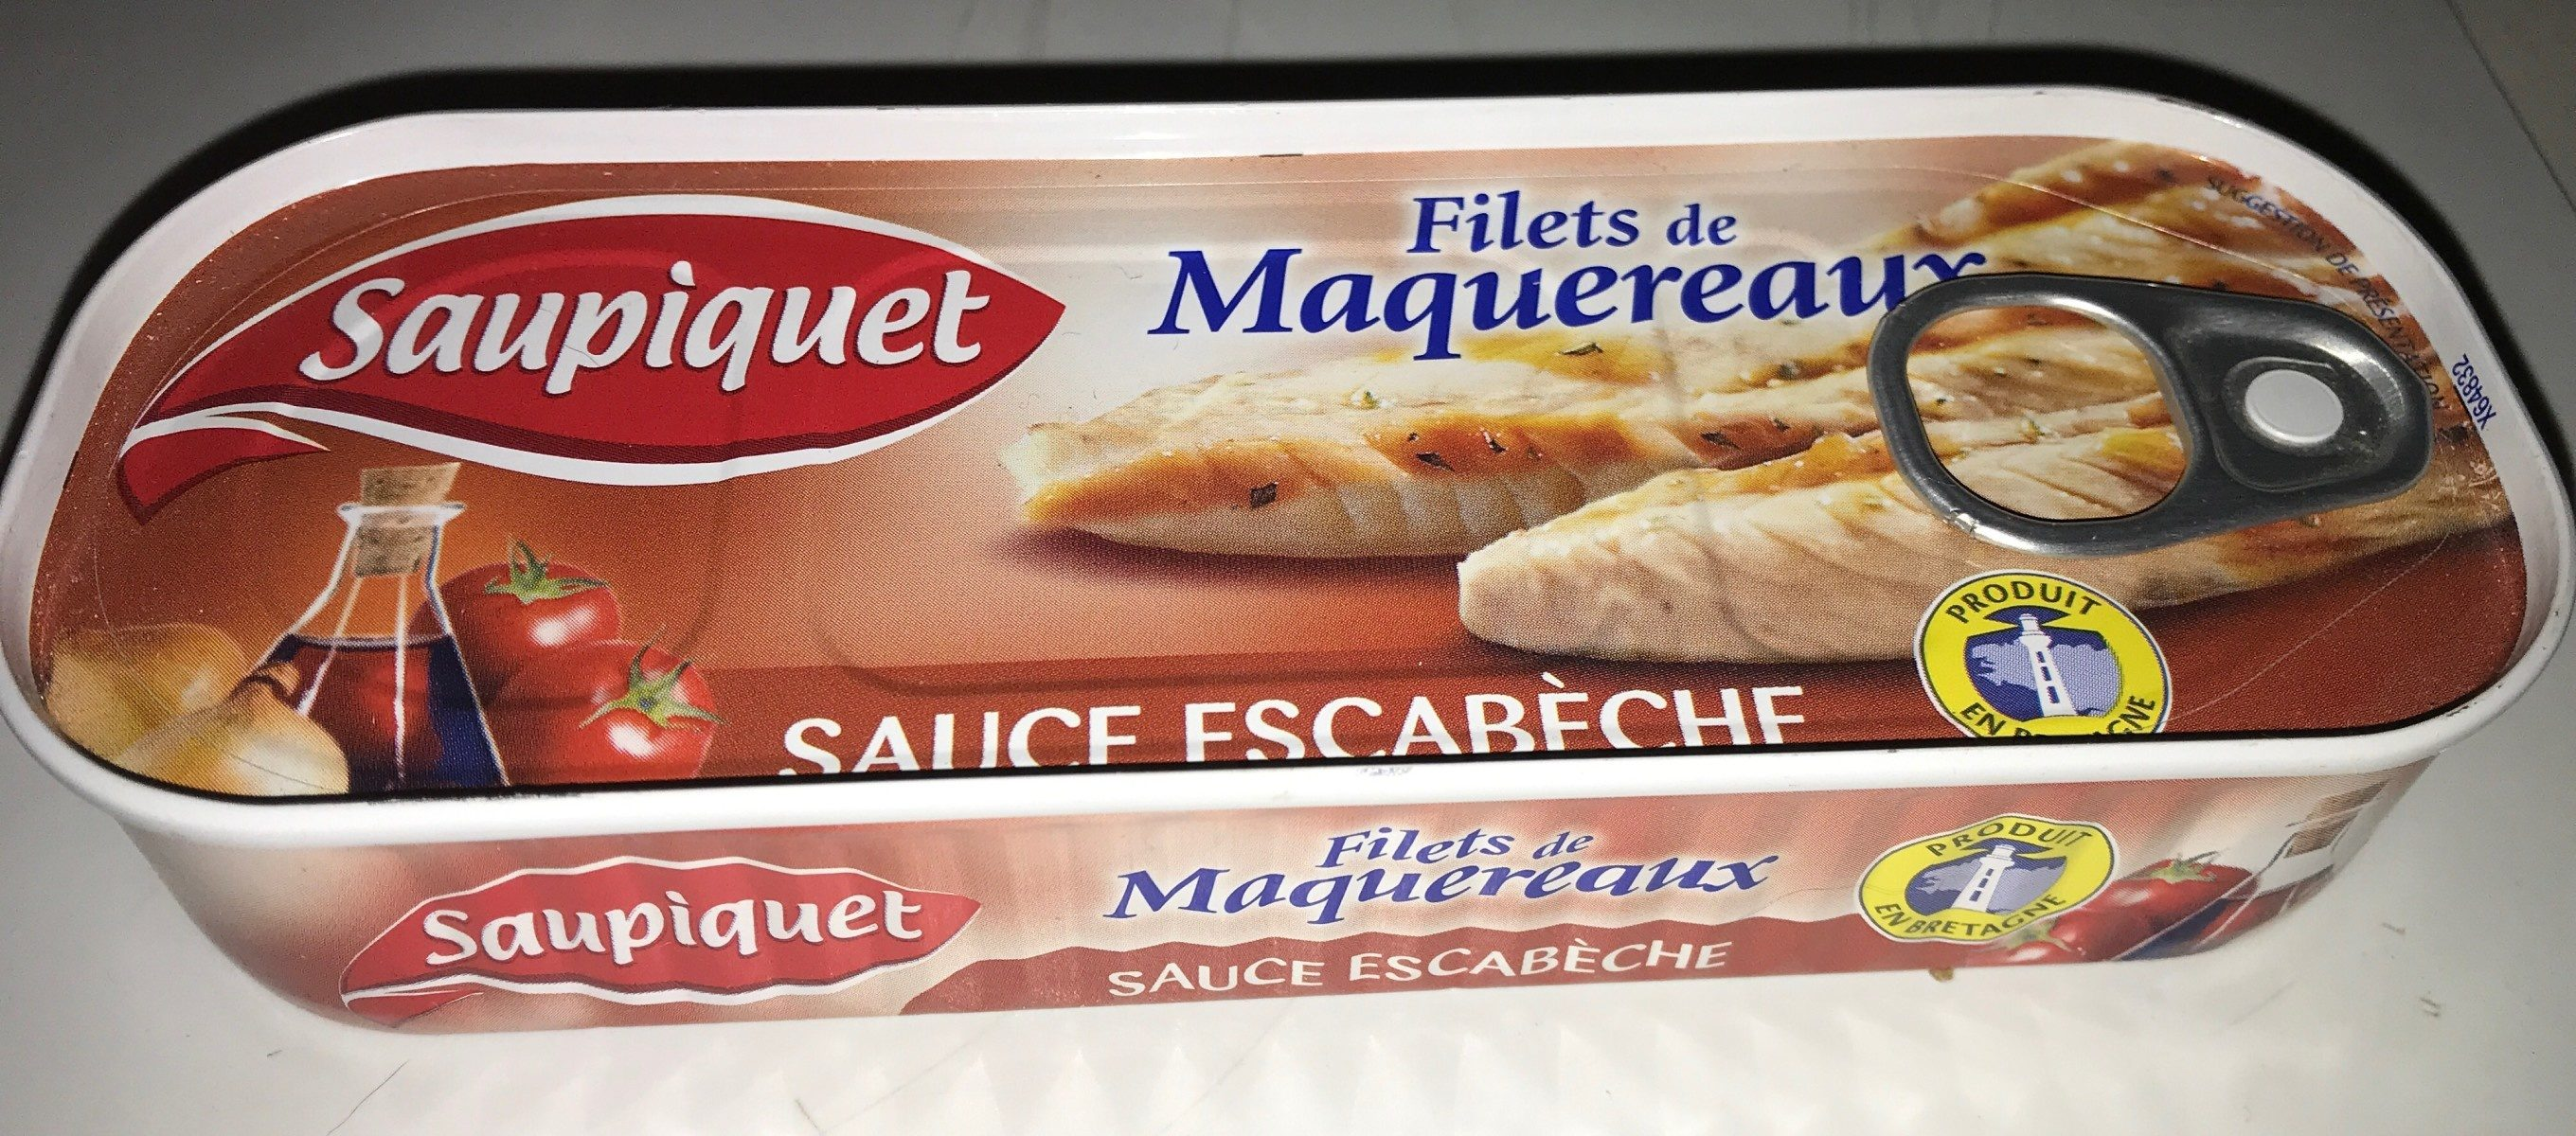 Filets de Maquereaux Sauce Escabèche 169 gr - Product - fr